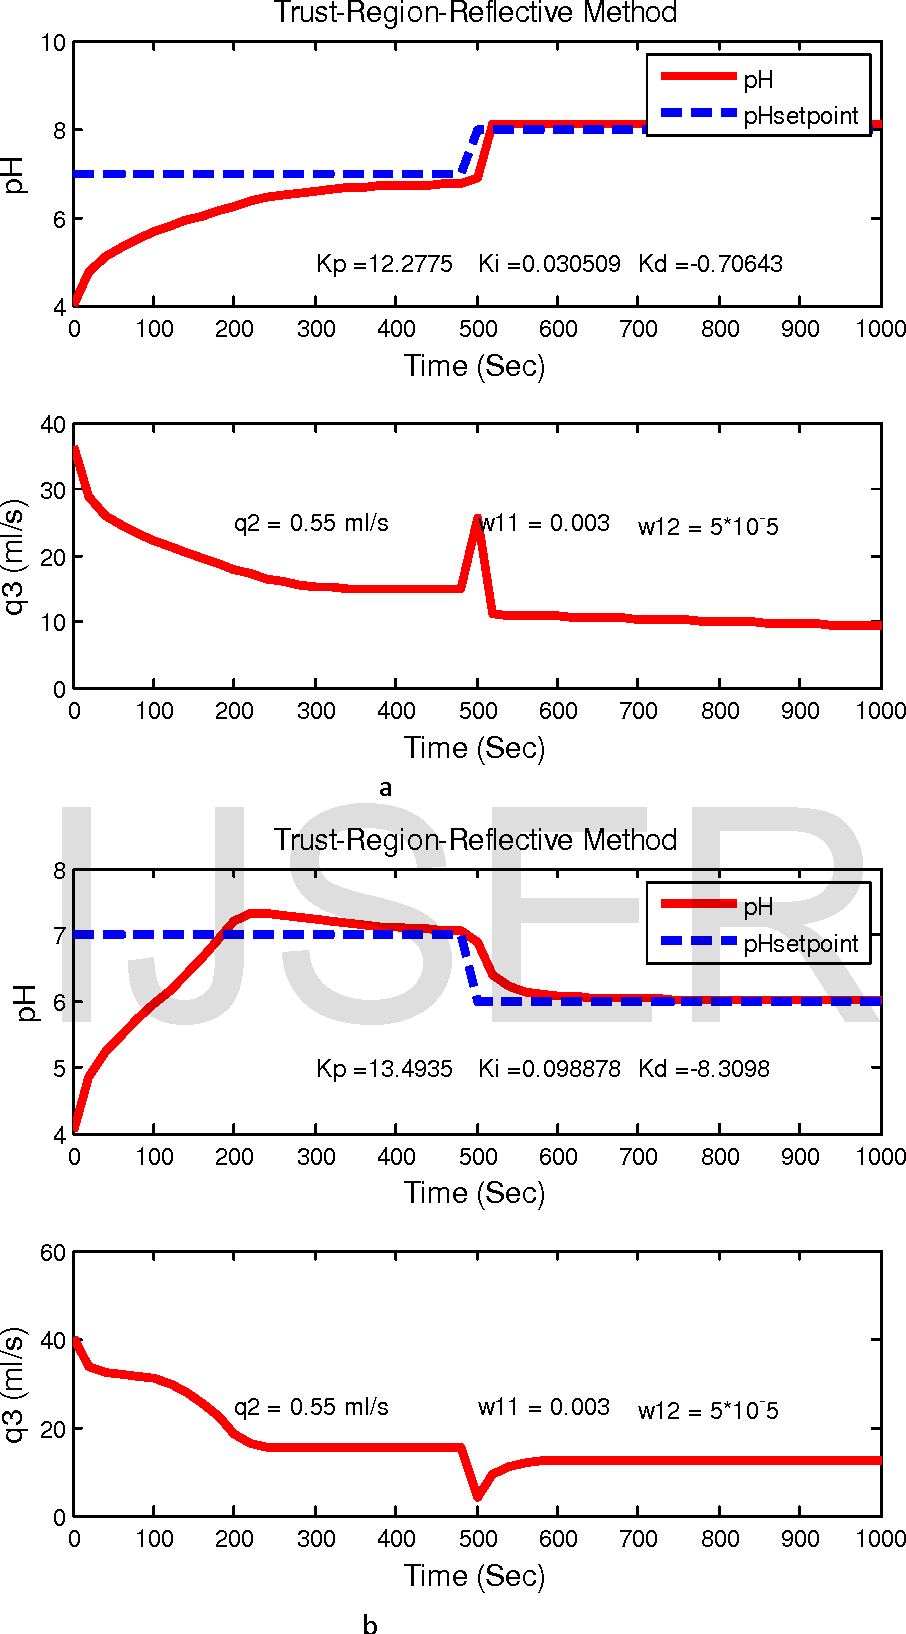 Fig. 3 The response of the pH neutralization process with change in set point